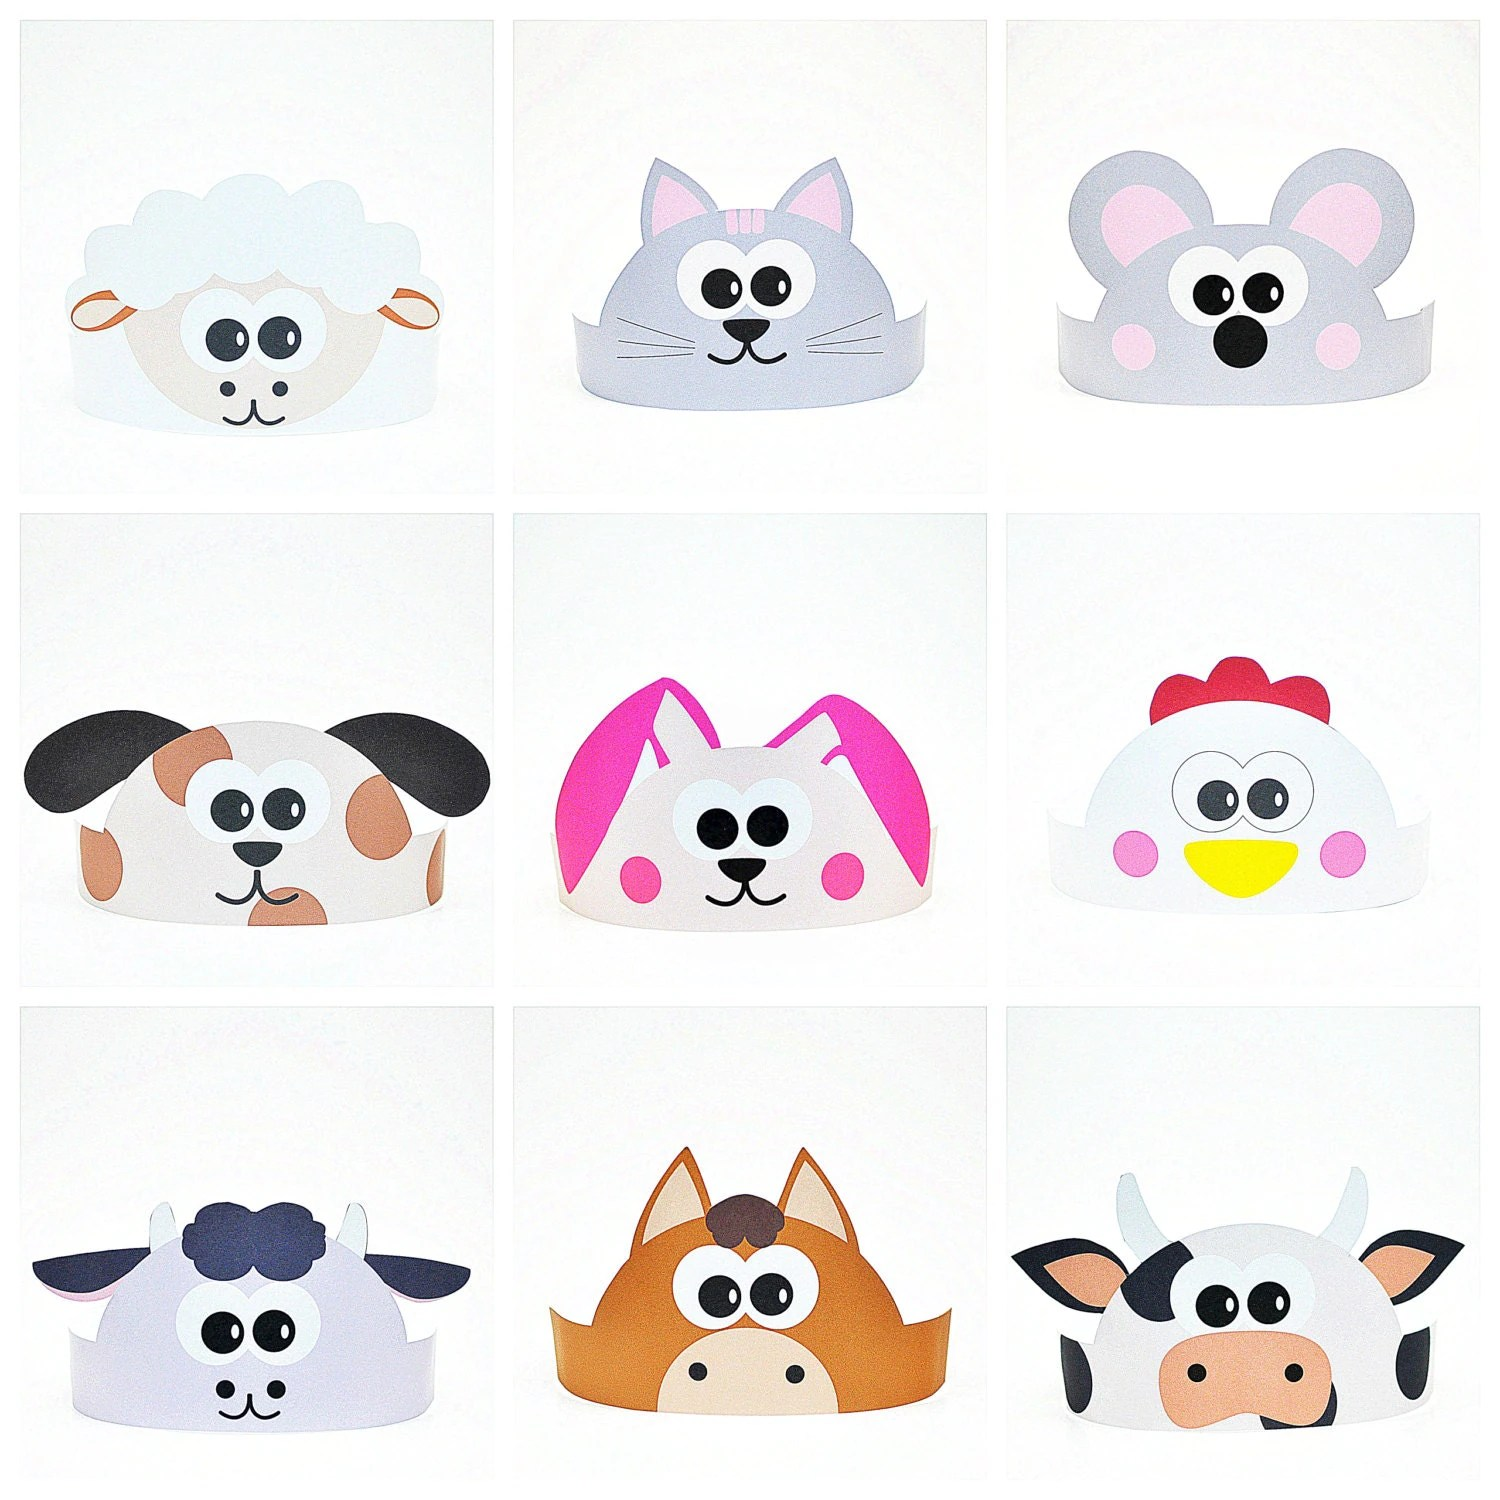 11 Farm Animals Paper Crowns Set Diy Paper Hats Template Kit